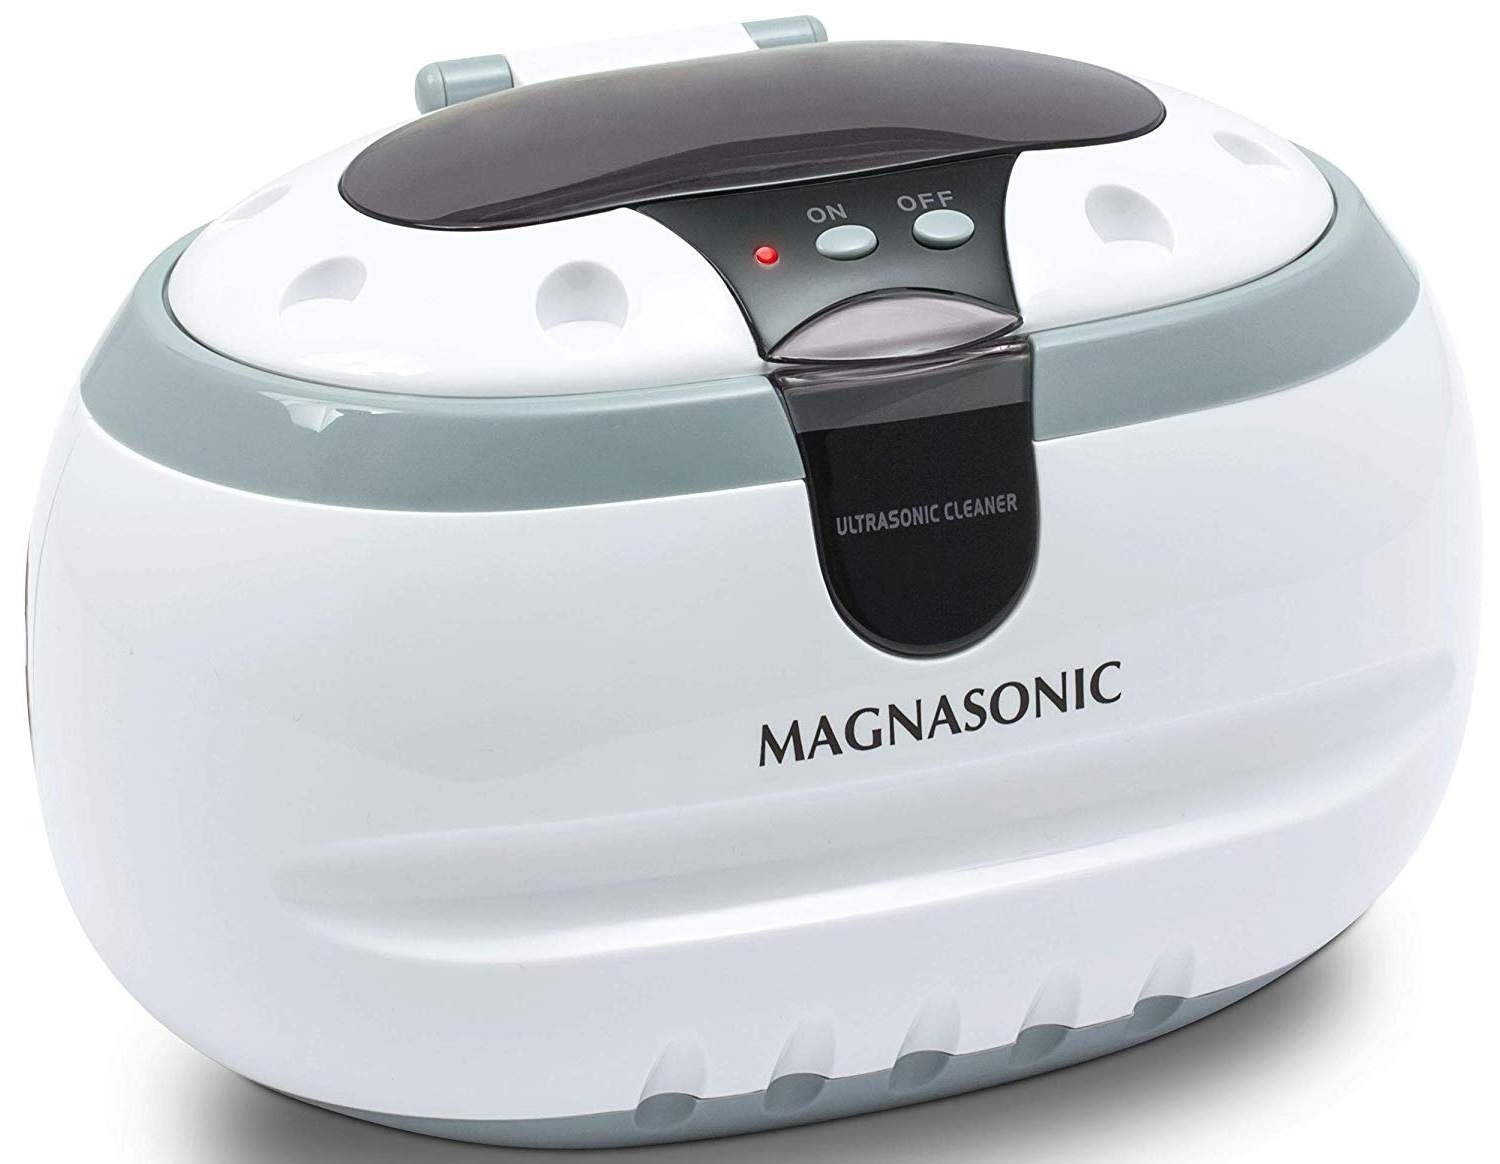 Top Best Magnasonic Professional Ultrasonic Polishing Jewelry Cleaner